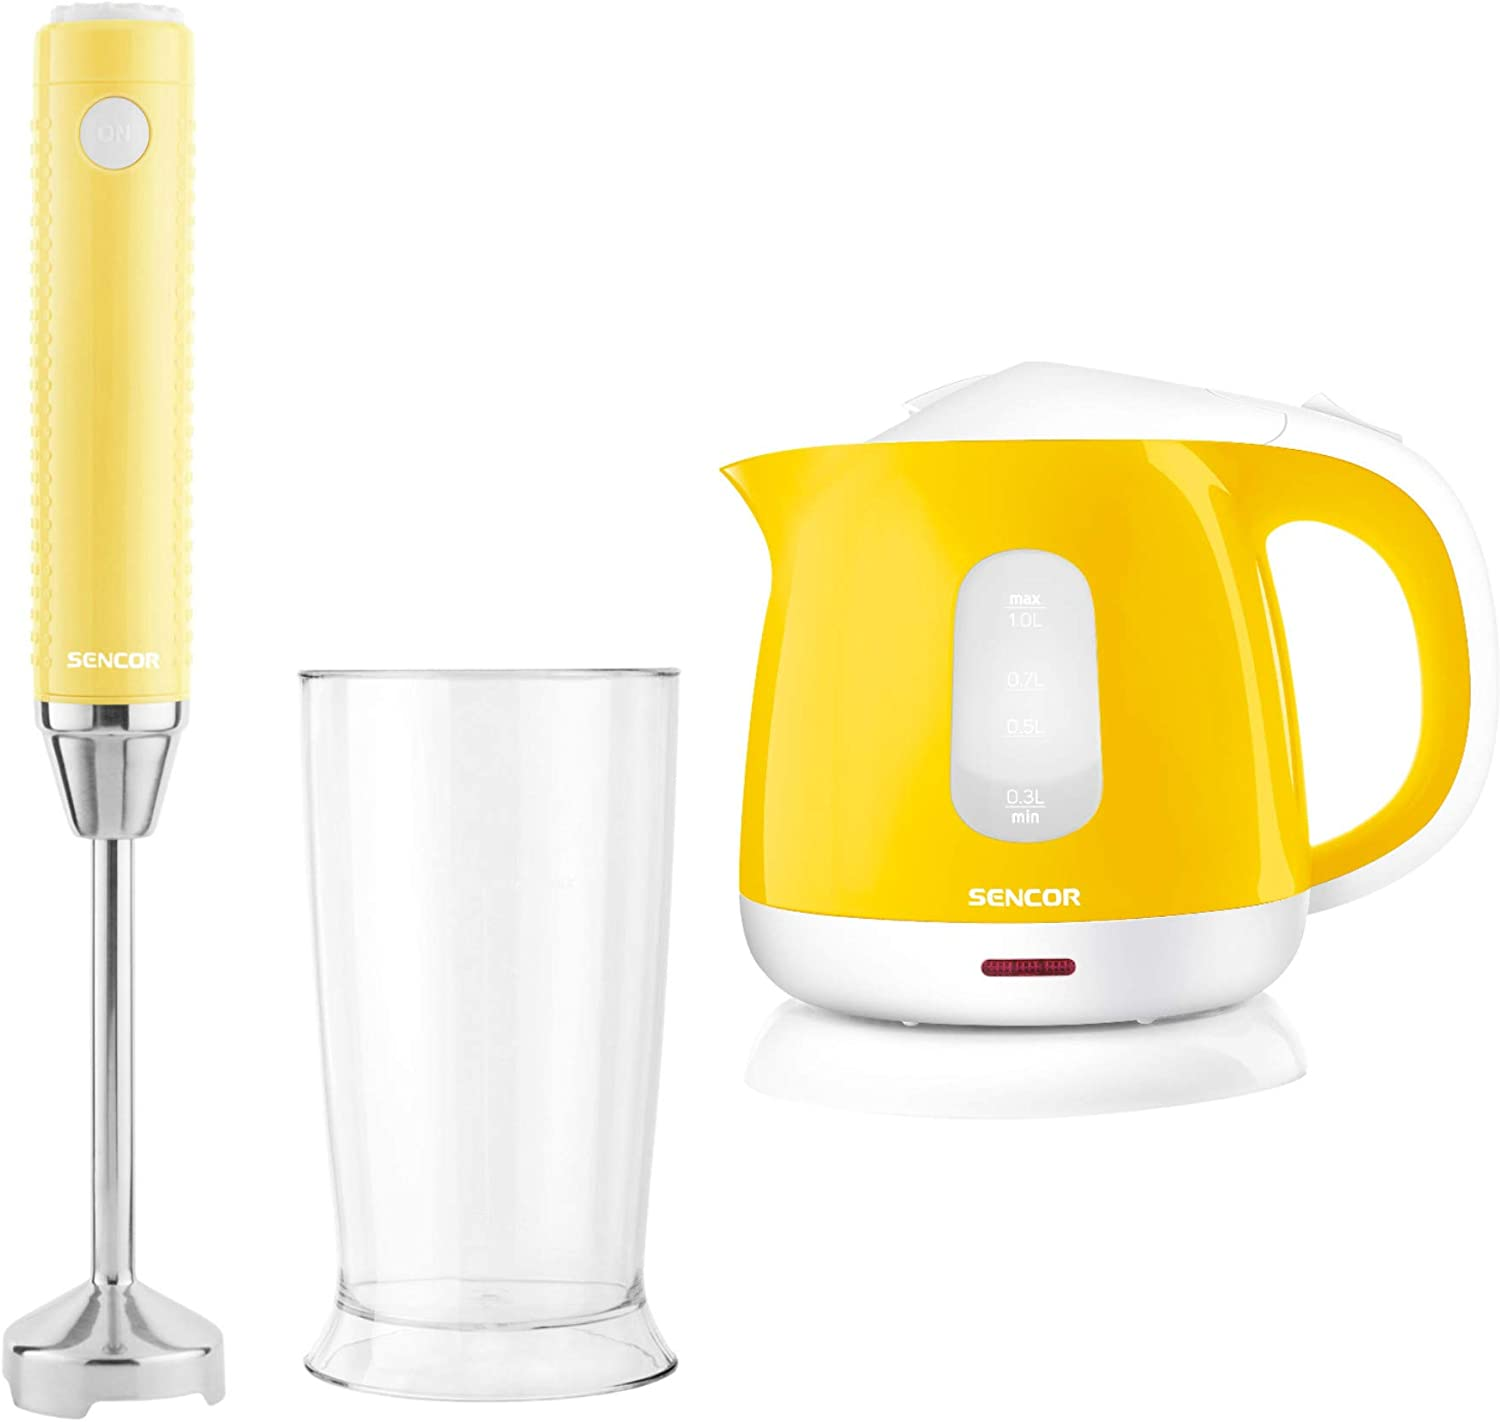 Sencor Extra Slim Hand Blender and Small Electric Kettle Bundle (Yellow) (2 Items)